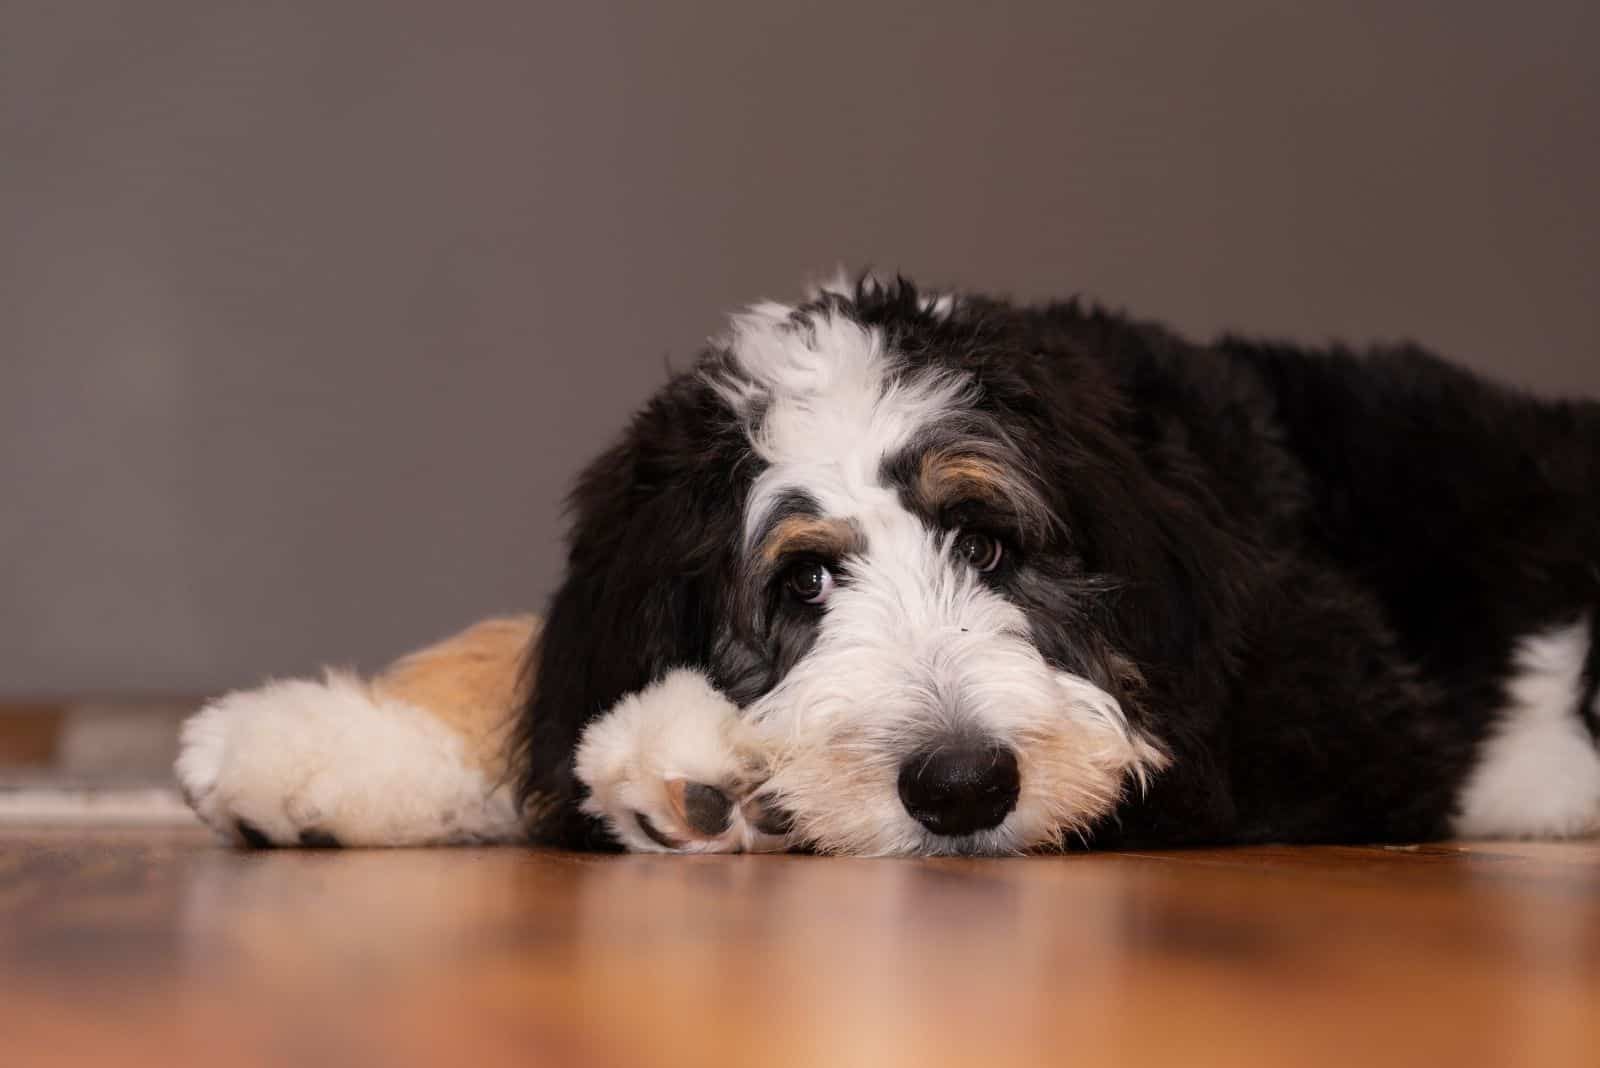 5month old bernedoodle lying down on the floor